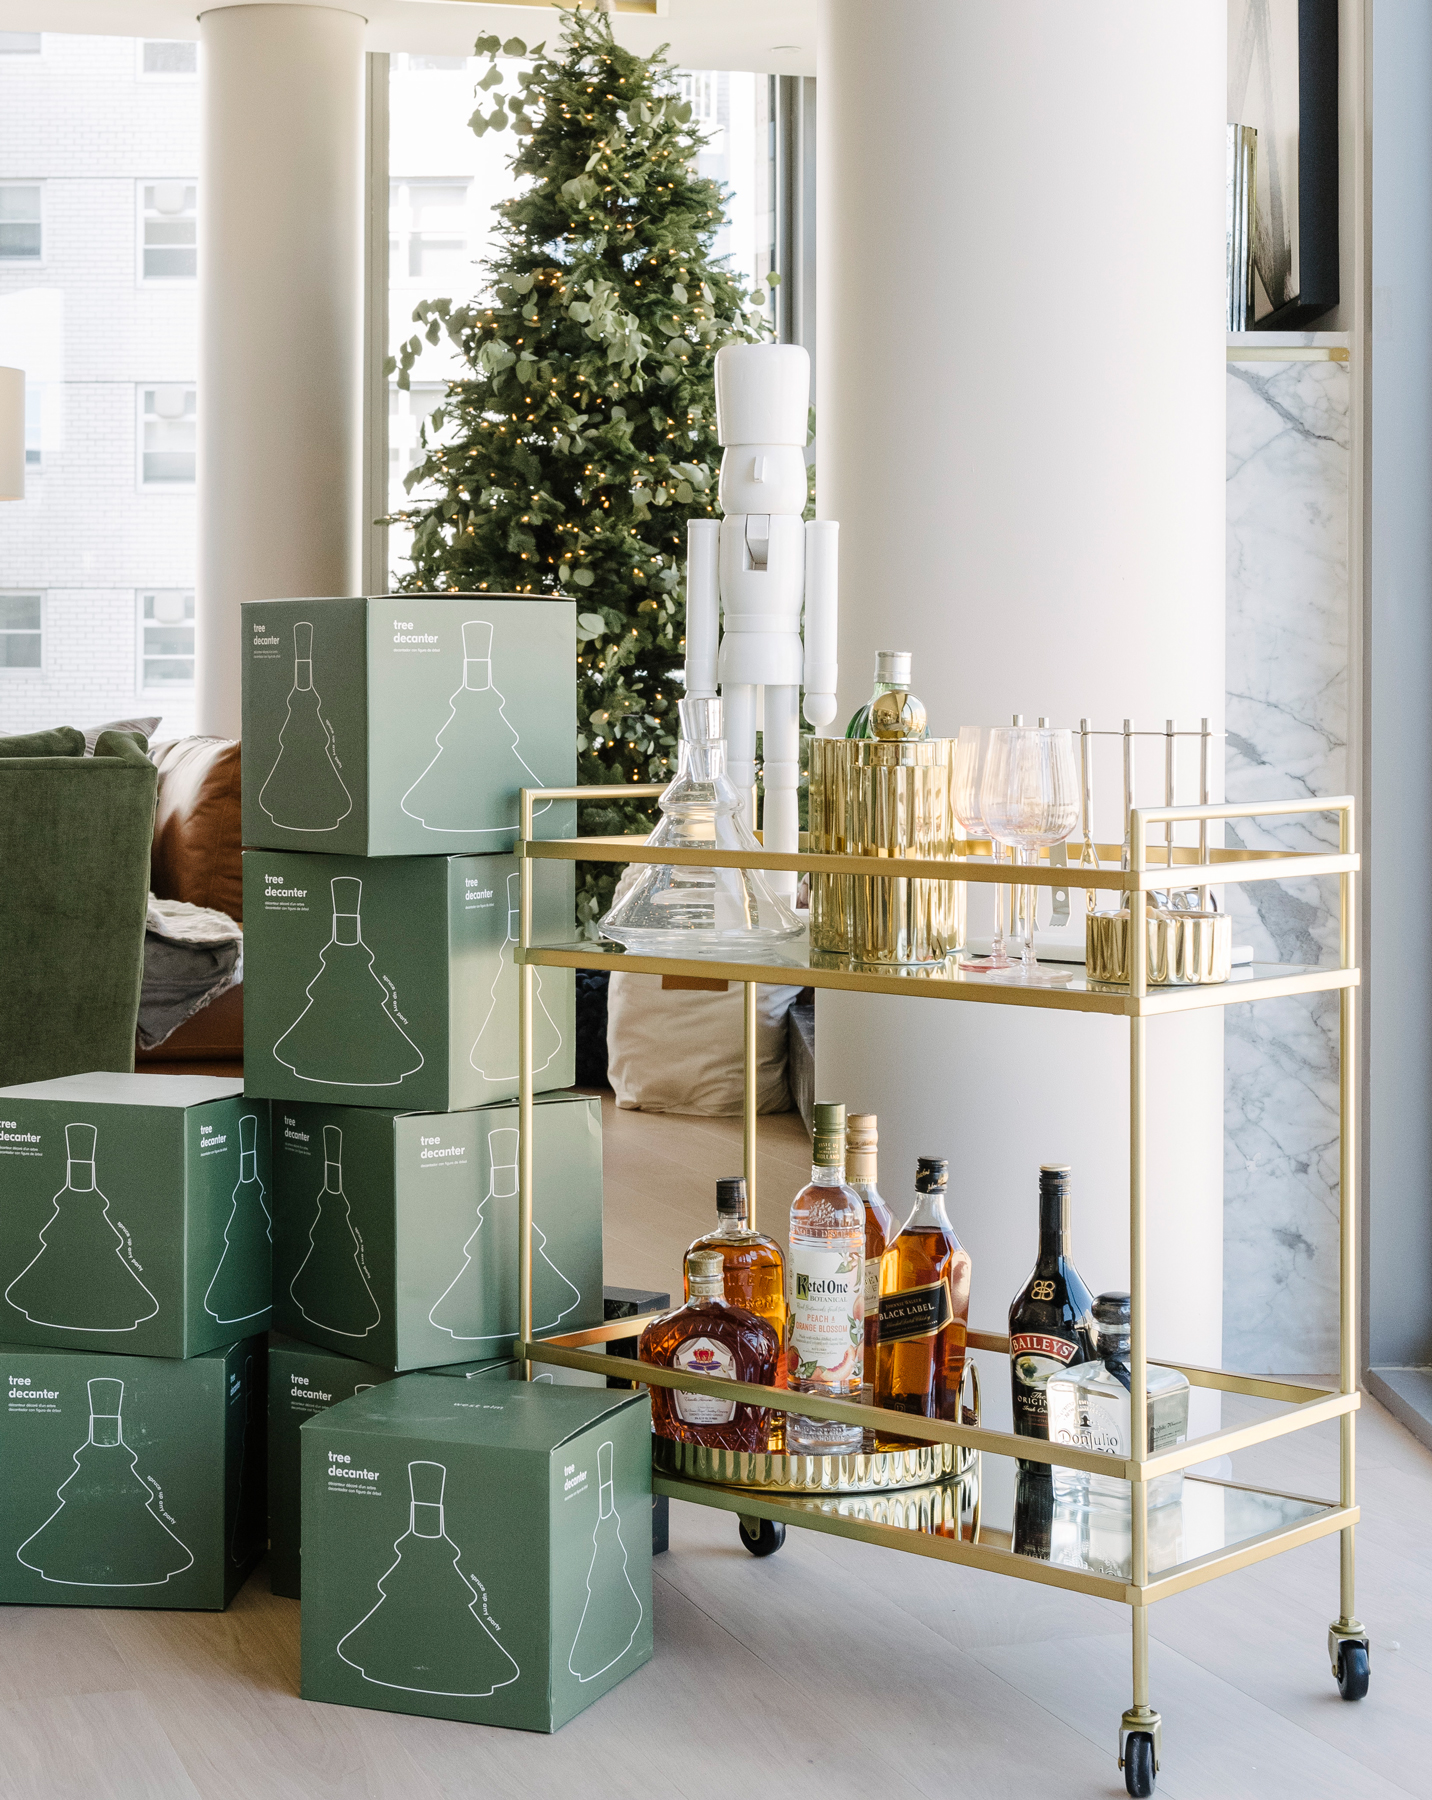 West Elm Holiday House decorating trends, ideas - Minimalist details